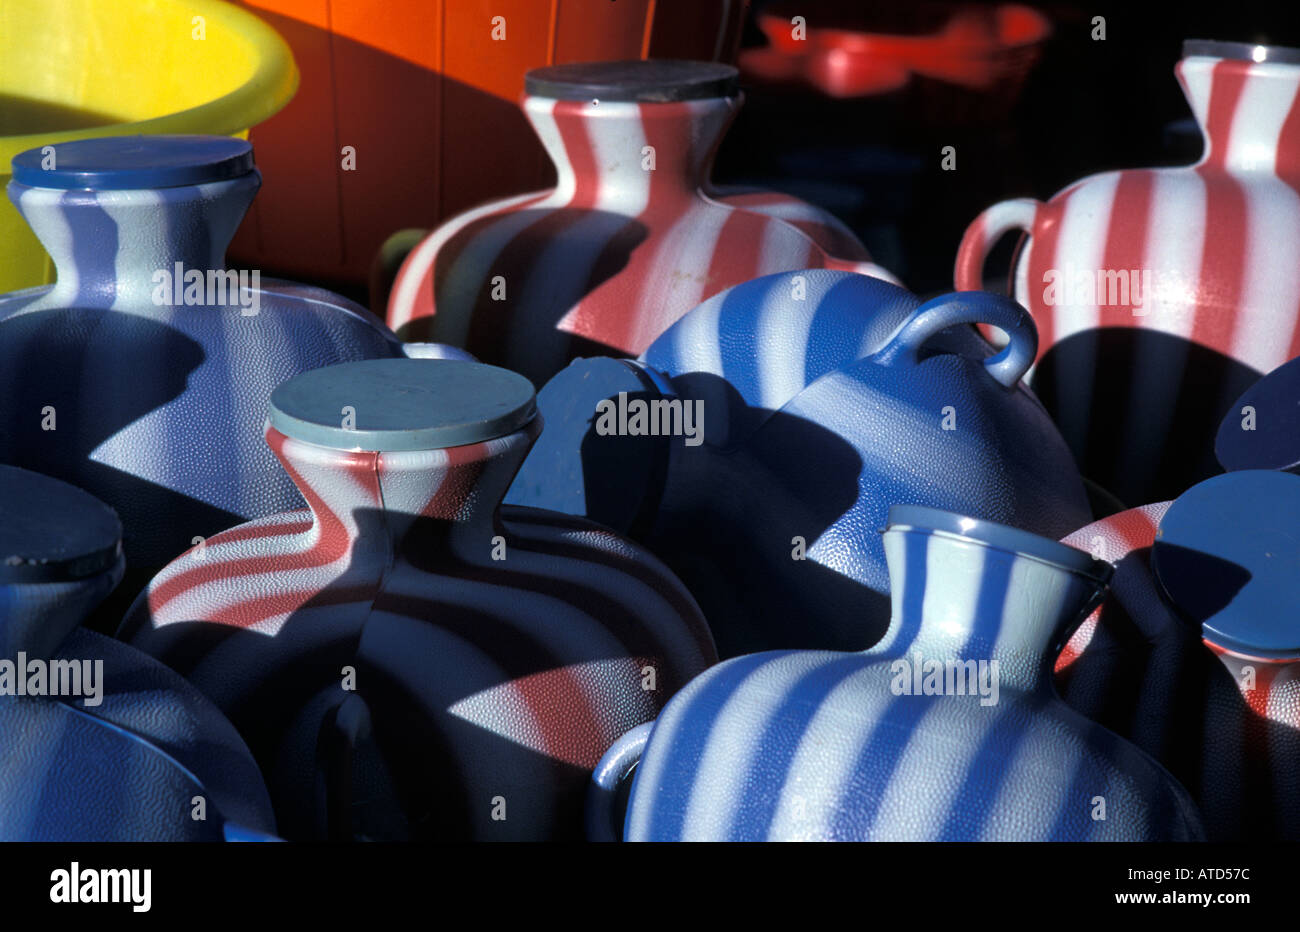 Selection of modern water jugs for sale at market San Martin Jilotepeque Sacatepequez Guatemala - Stock Image